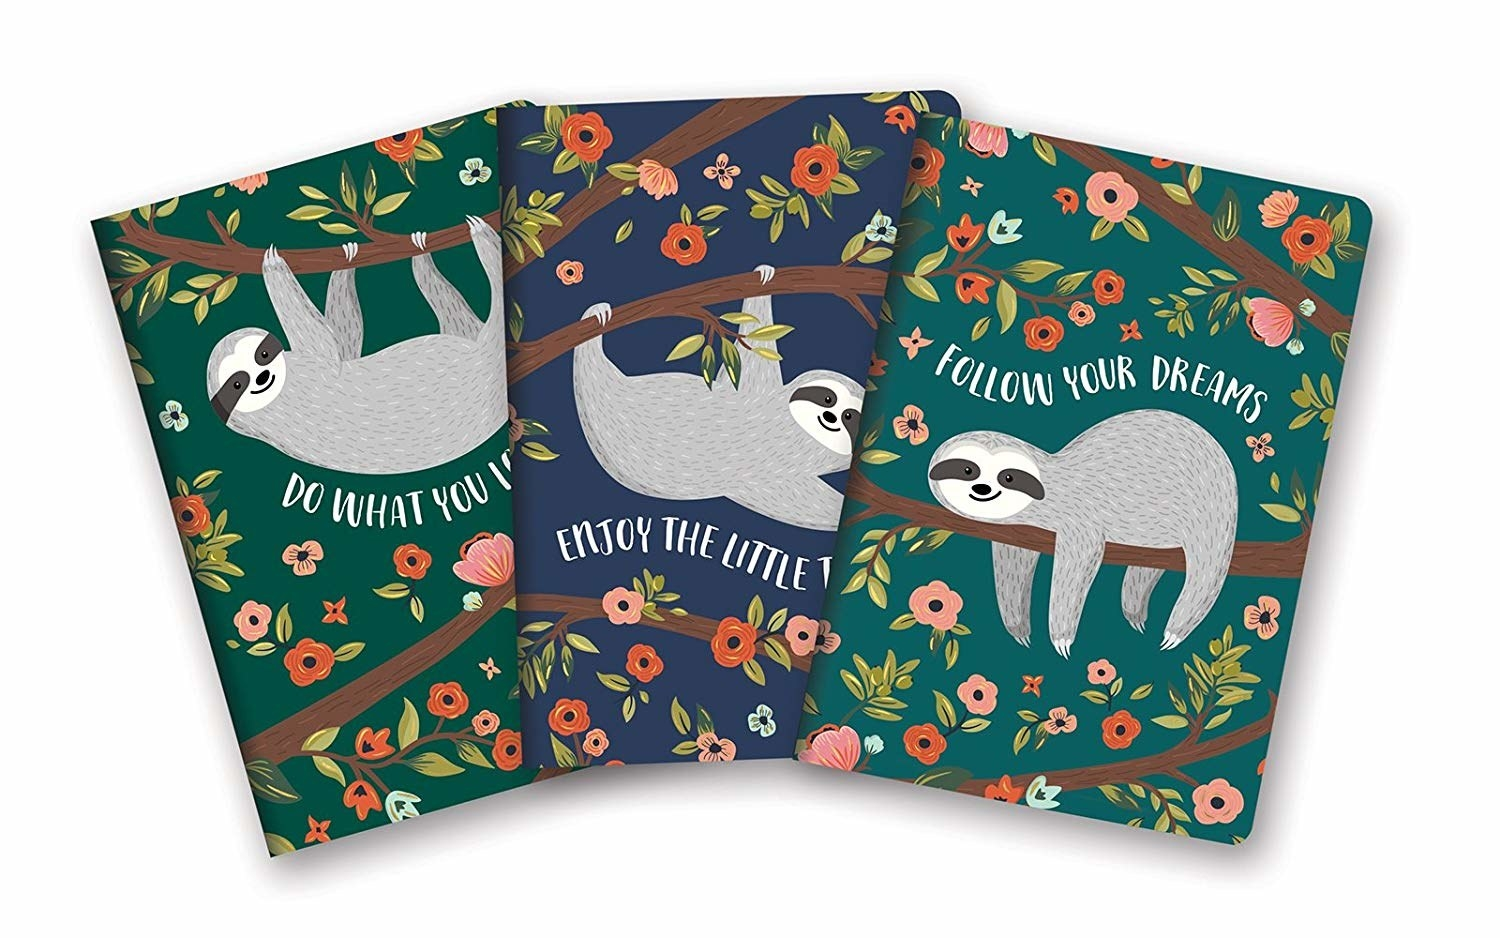 Three notebooks with a sloth drawing on it